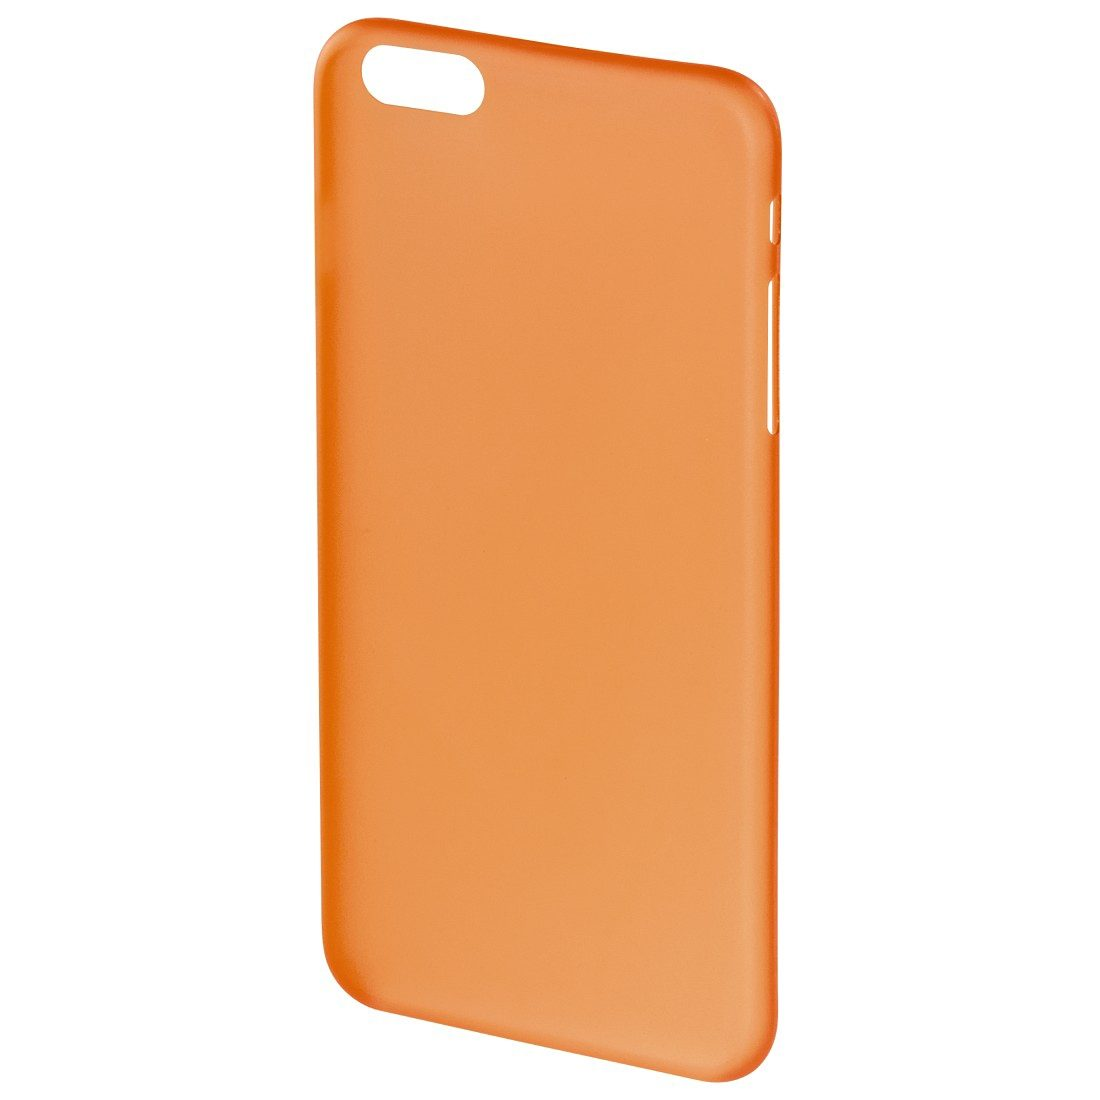 Hama Cover Ultra Slim für Apple iPhone 6/6s, Orange